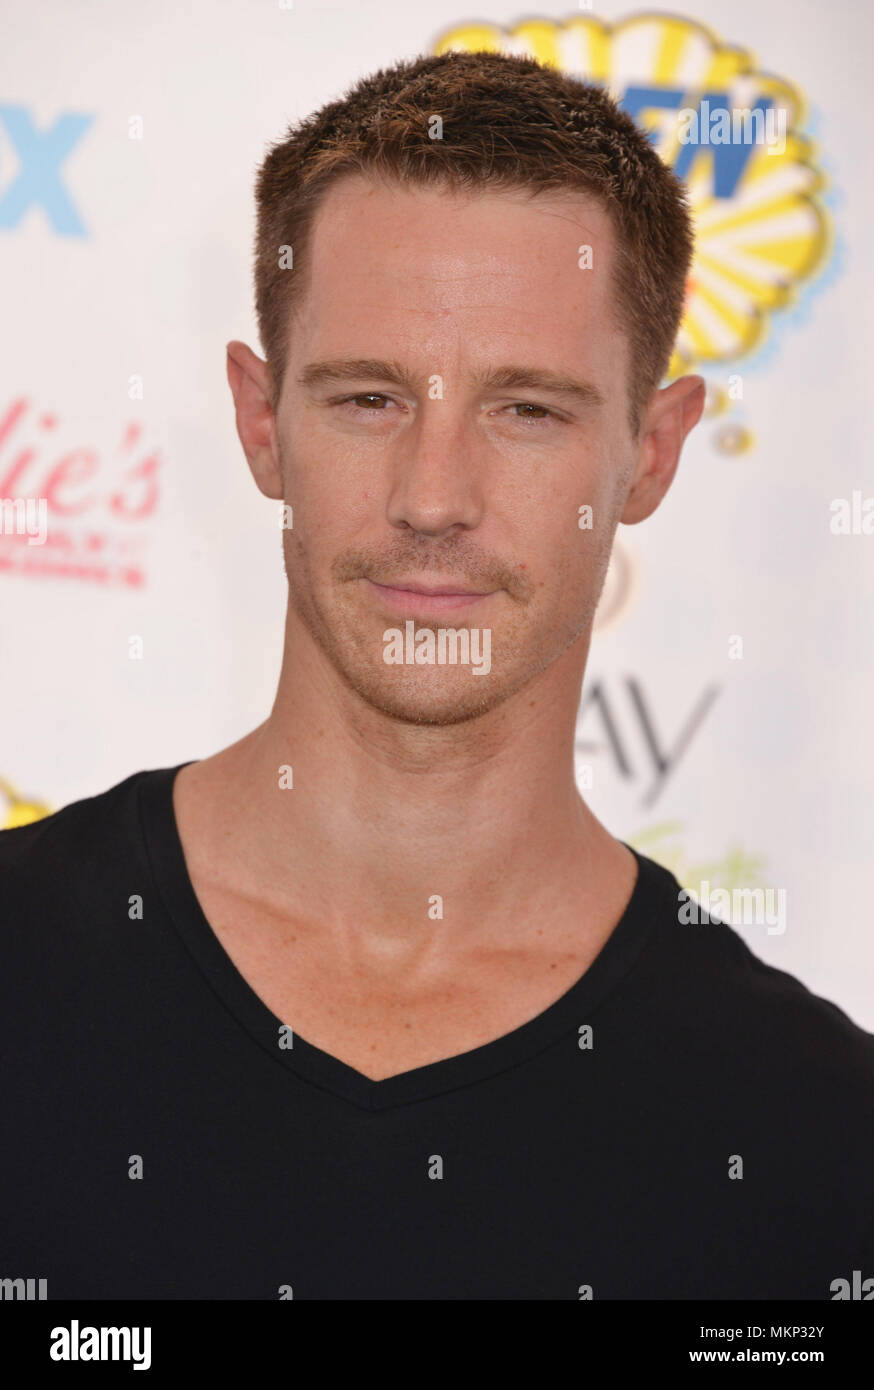 Jason Dohring  at Teen Choice Awards 2014 qt the Shrine Auditorium in Los Angeles.Jason Dohring  Red Carpet Event, Vertical, USA, Film Industry, Celebrities,  Photography, Bestof, Arts Culture and Entertainment, Topix Celebrities fashion /  Vertical, Best of, Event in Hollywood Life - California,  Red Carpet and backstage, USA, Film Industry, Celebrities,  movie celebrities, TV celebrities, Music celebrities, Photography, Bestof, Arts Culture and Entertainment,  Topix, headshot, vertical, one person,, from the year , 2014, inquiry tsuni@Gamma-USA.com - Stock Image